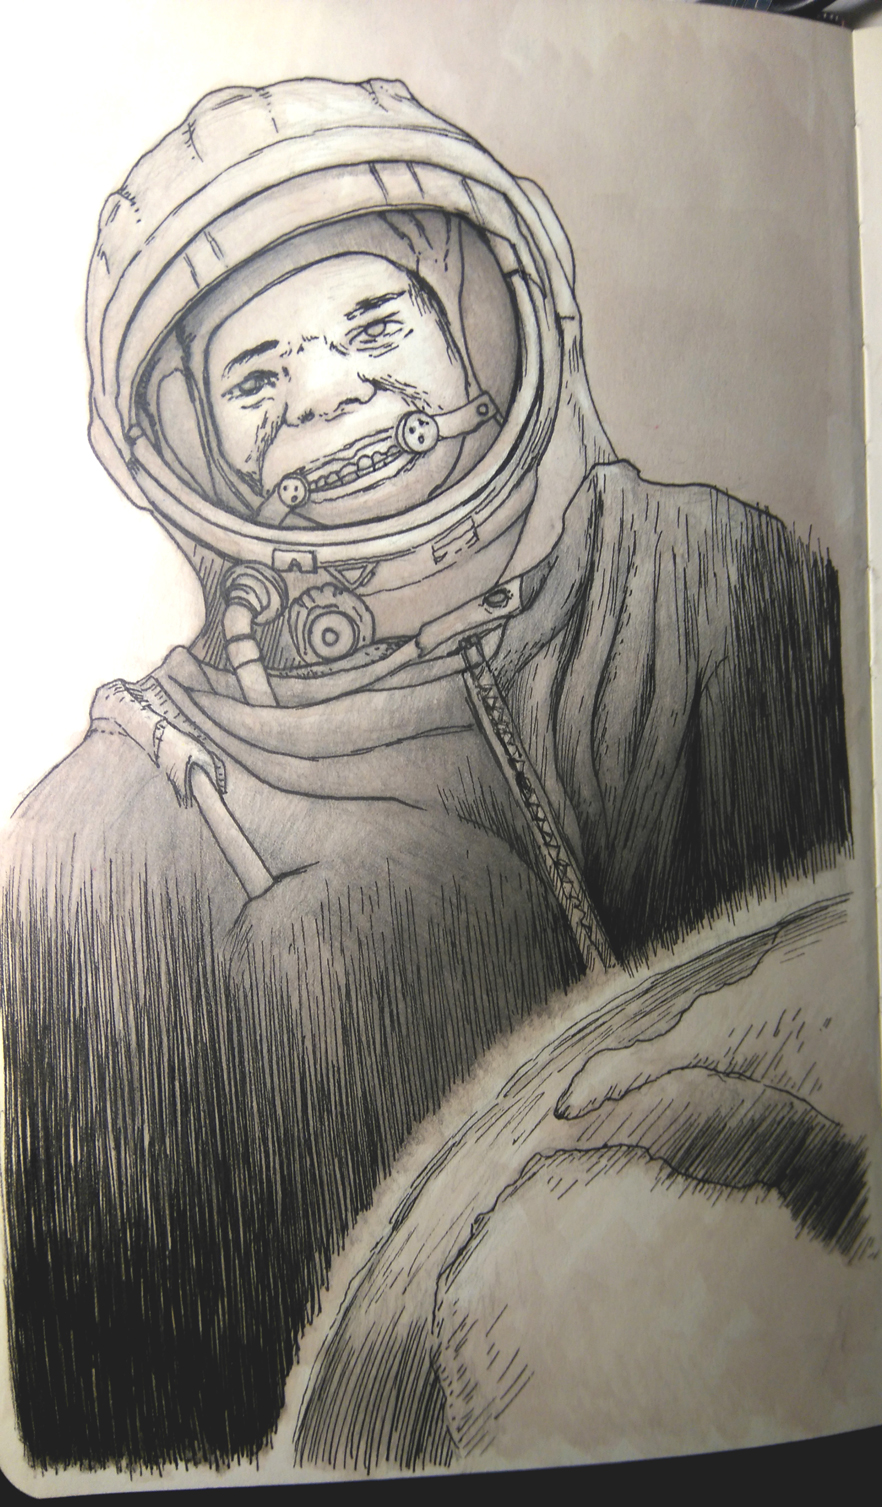 Moleskin, Cosmonaut Sketch - Copic Marker, pencil, pen and ink.